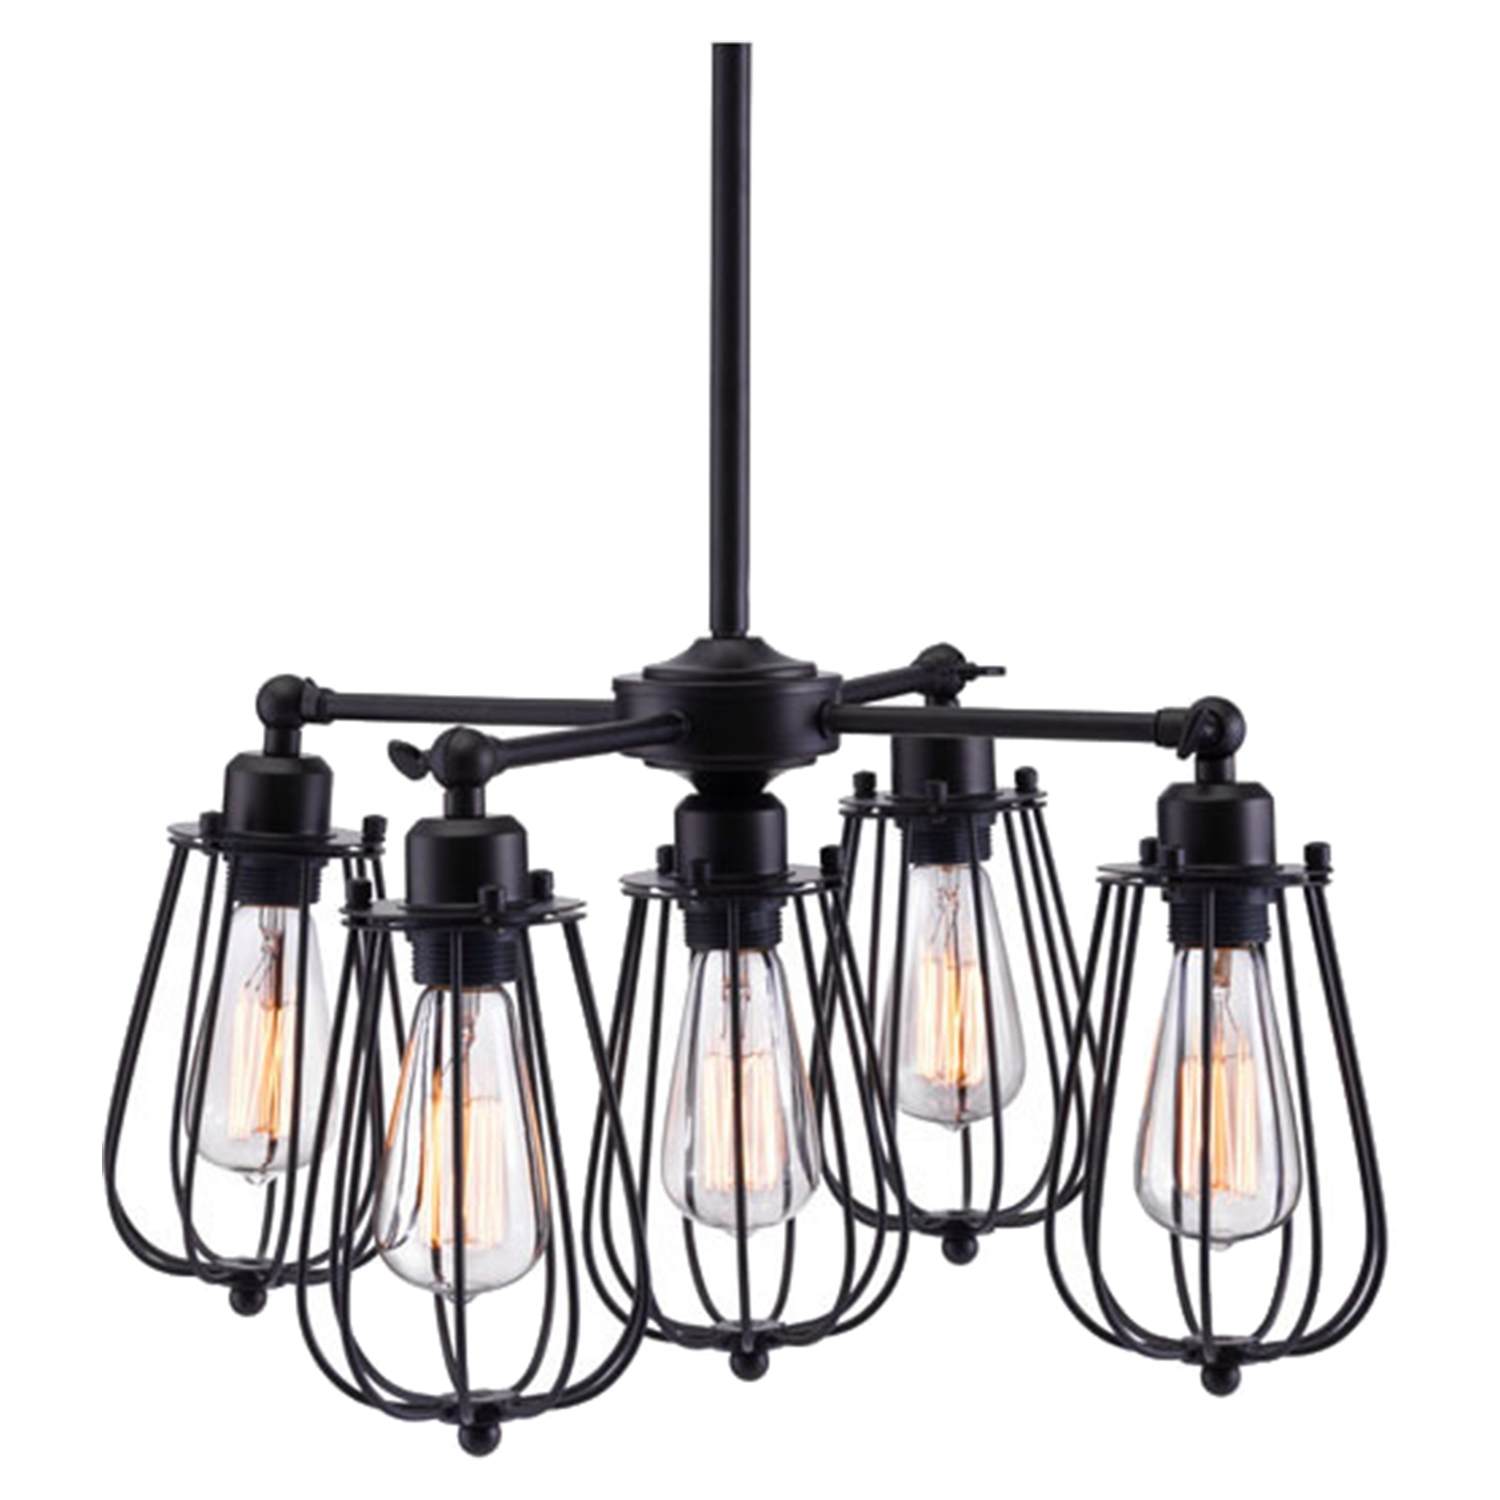 Porirua Distressed Black Ceiling Lamp - ZM-98424